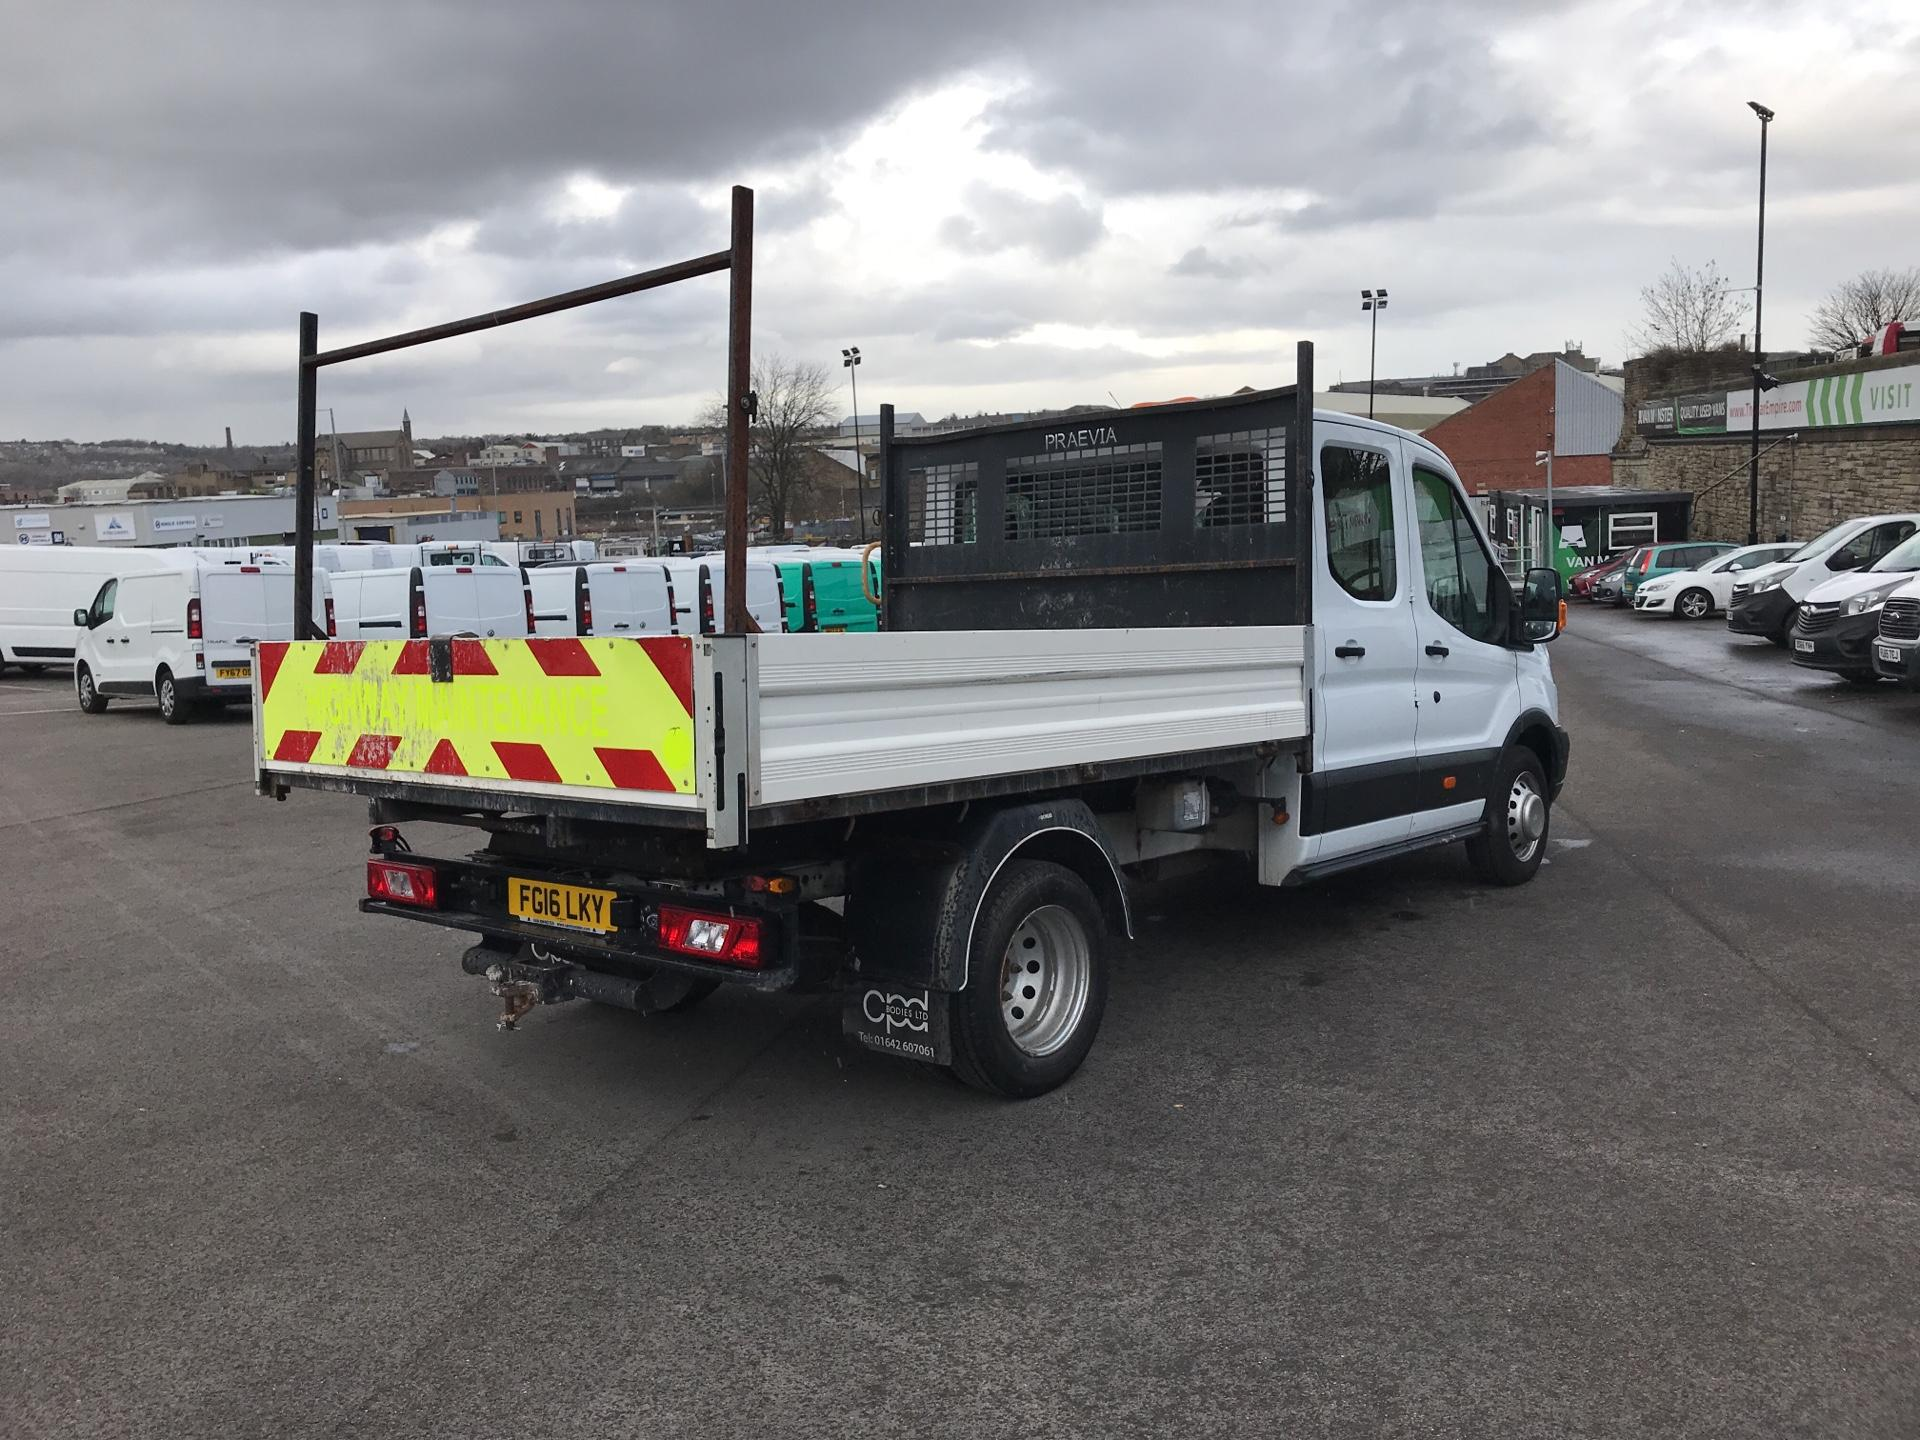 2016 Ford Transit 2.2 TDCI LWB DOUBLE CAB TIPPER EURO 5  (FG16LKY) Image 3